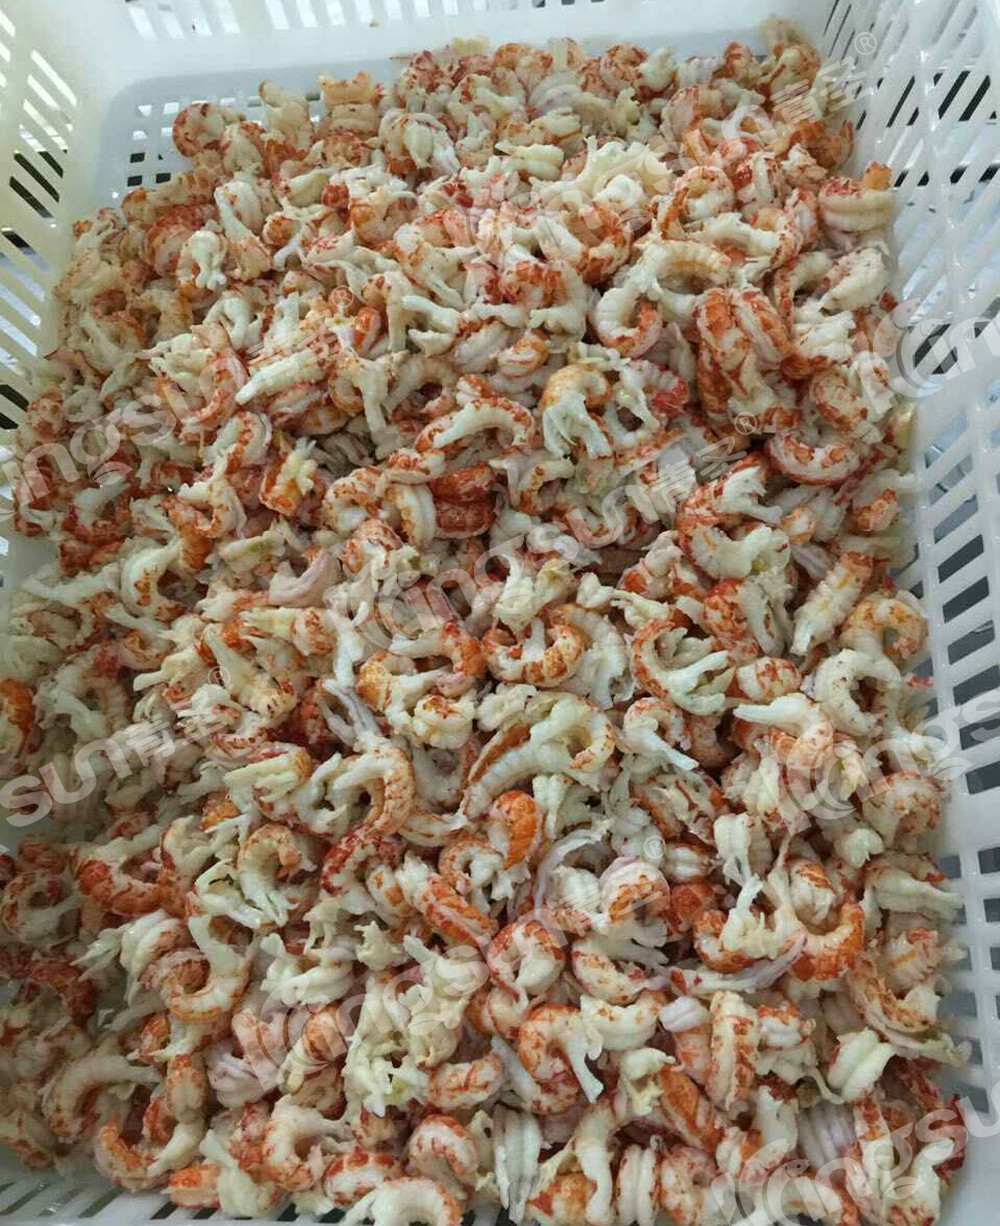 Cooked & Peeled Crayfish Crawfish in Great Flavor